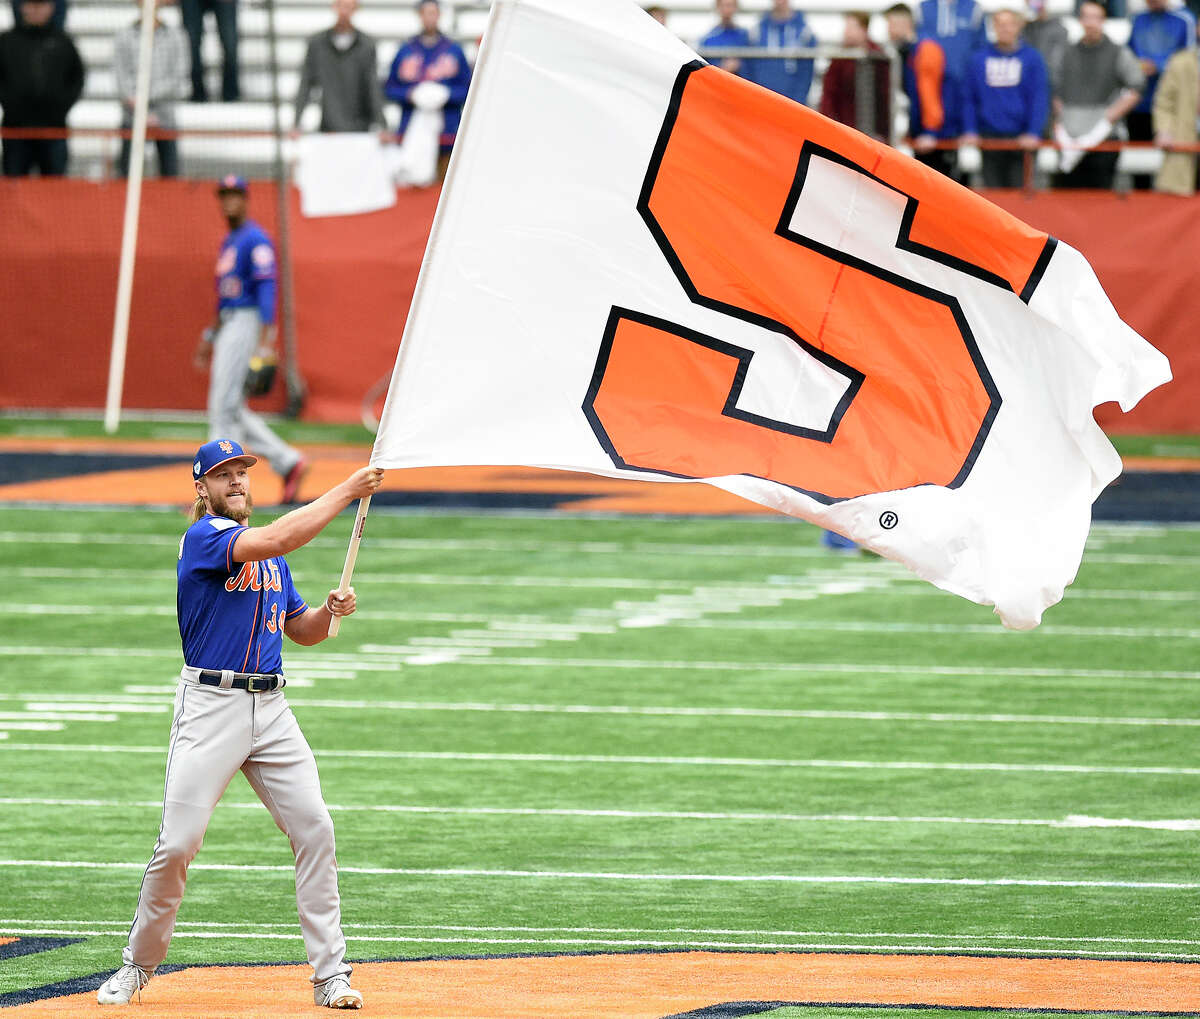 New York Met pitcher Noah Syndergaard waves the Syracuse University Flag at the fifty yard line. The Mets worked out at the Carrier Dome in Syracuse, N.Y., Tuesday, March 26, 2019. (Dennis Nett/The Post-Standard via AP)